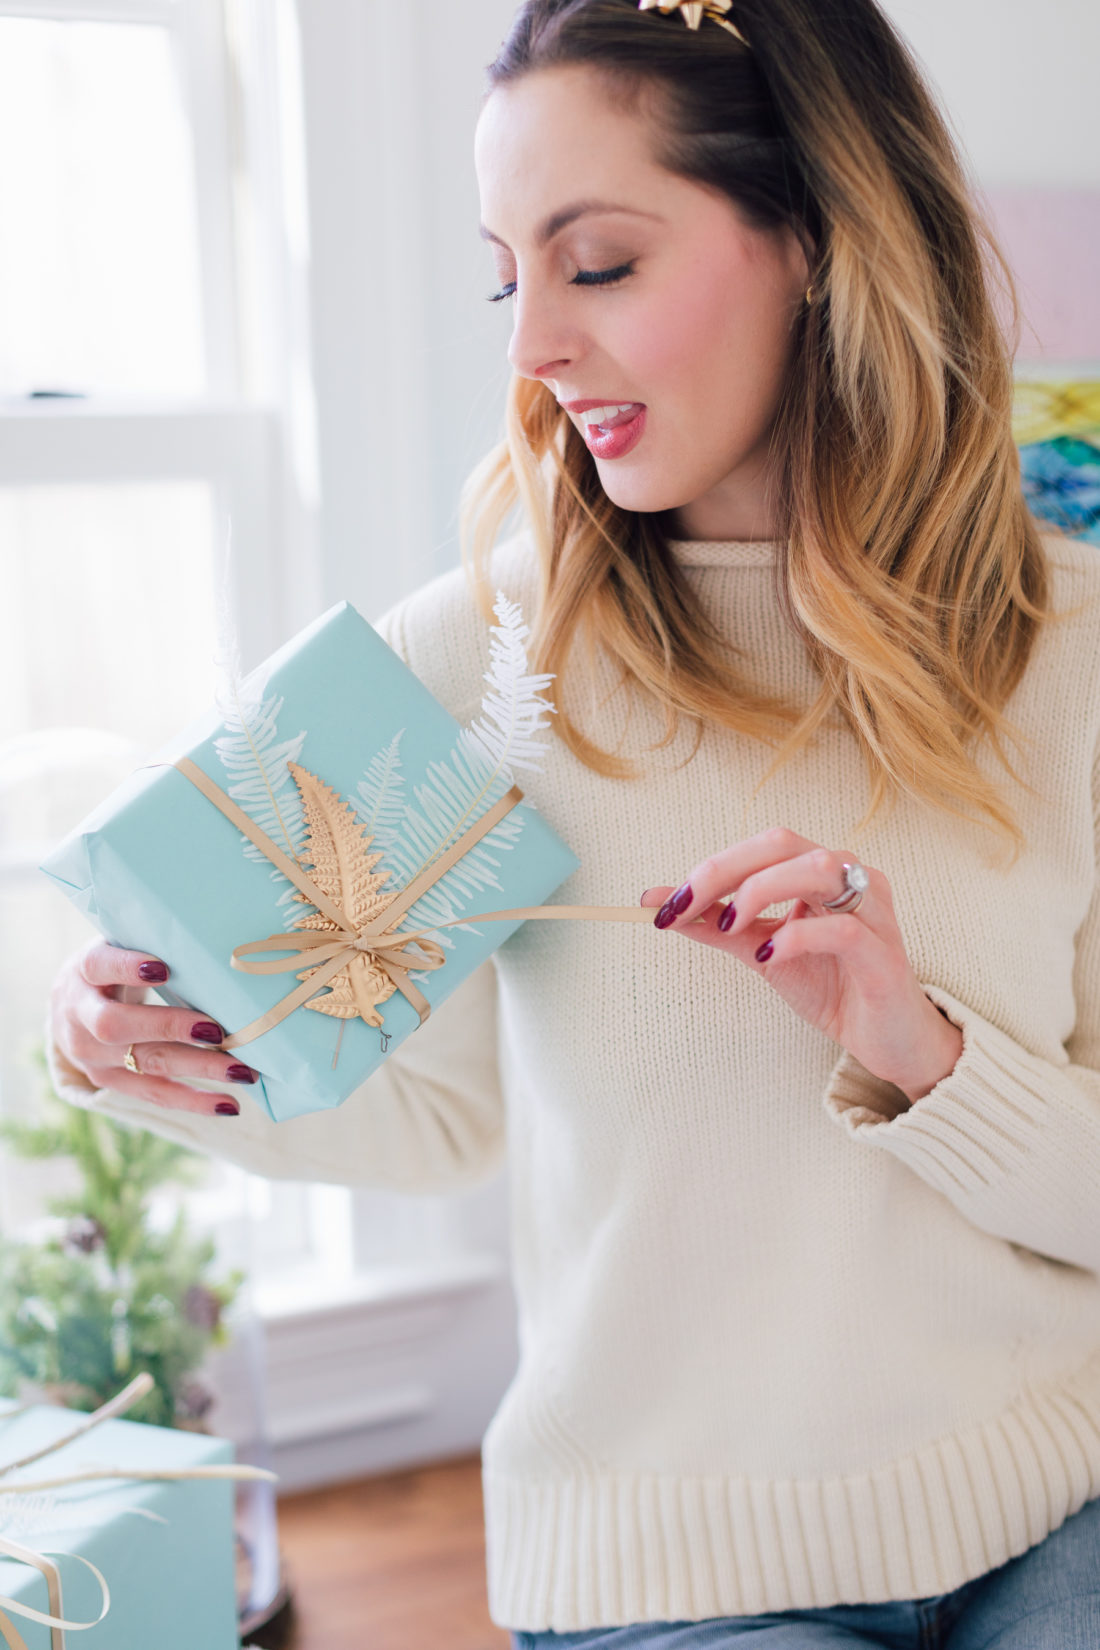 Eva Amurri Martino shares her Holiday Gift Guides for 2018!